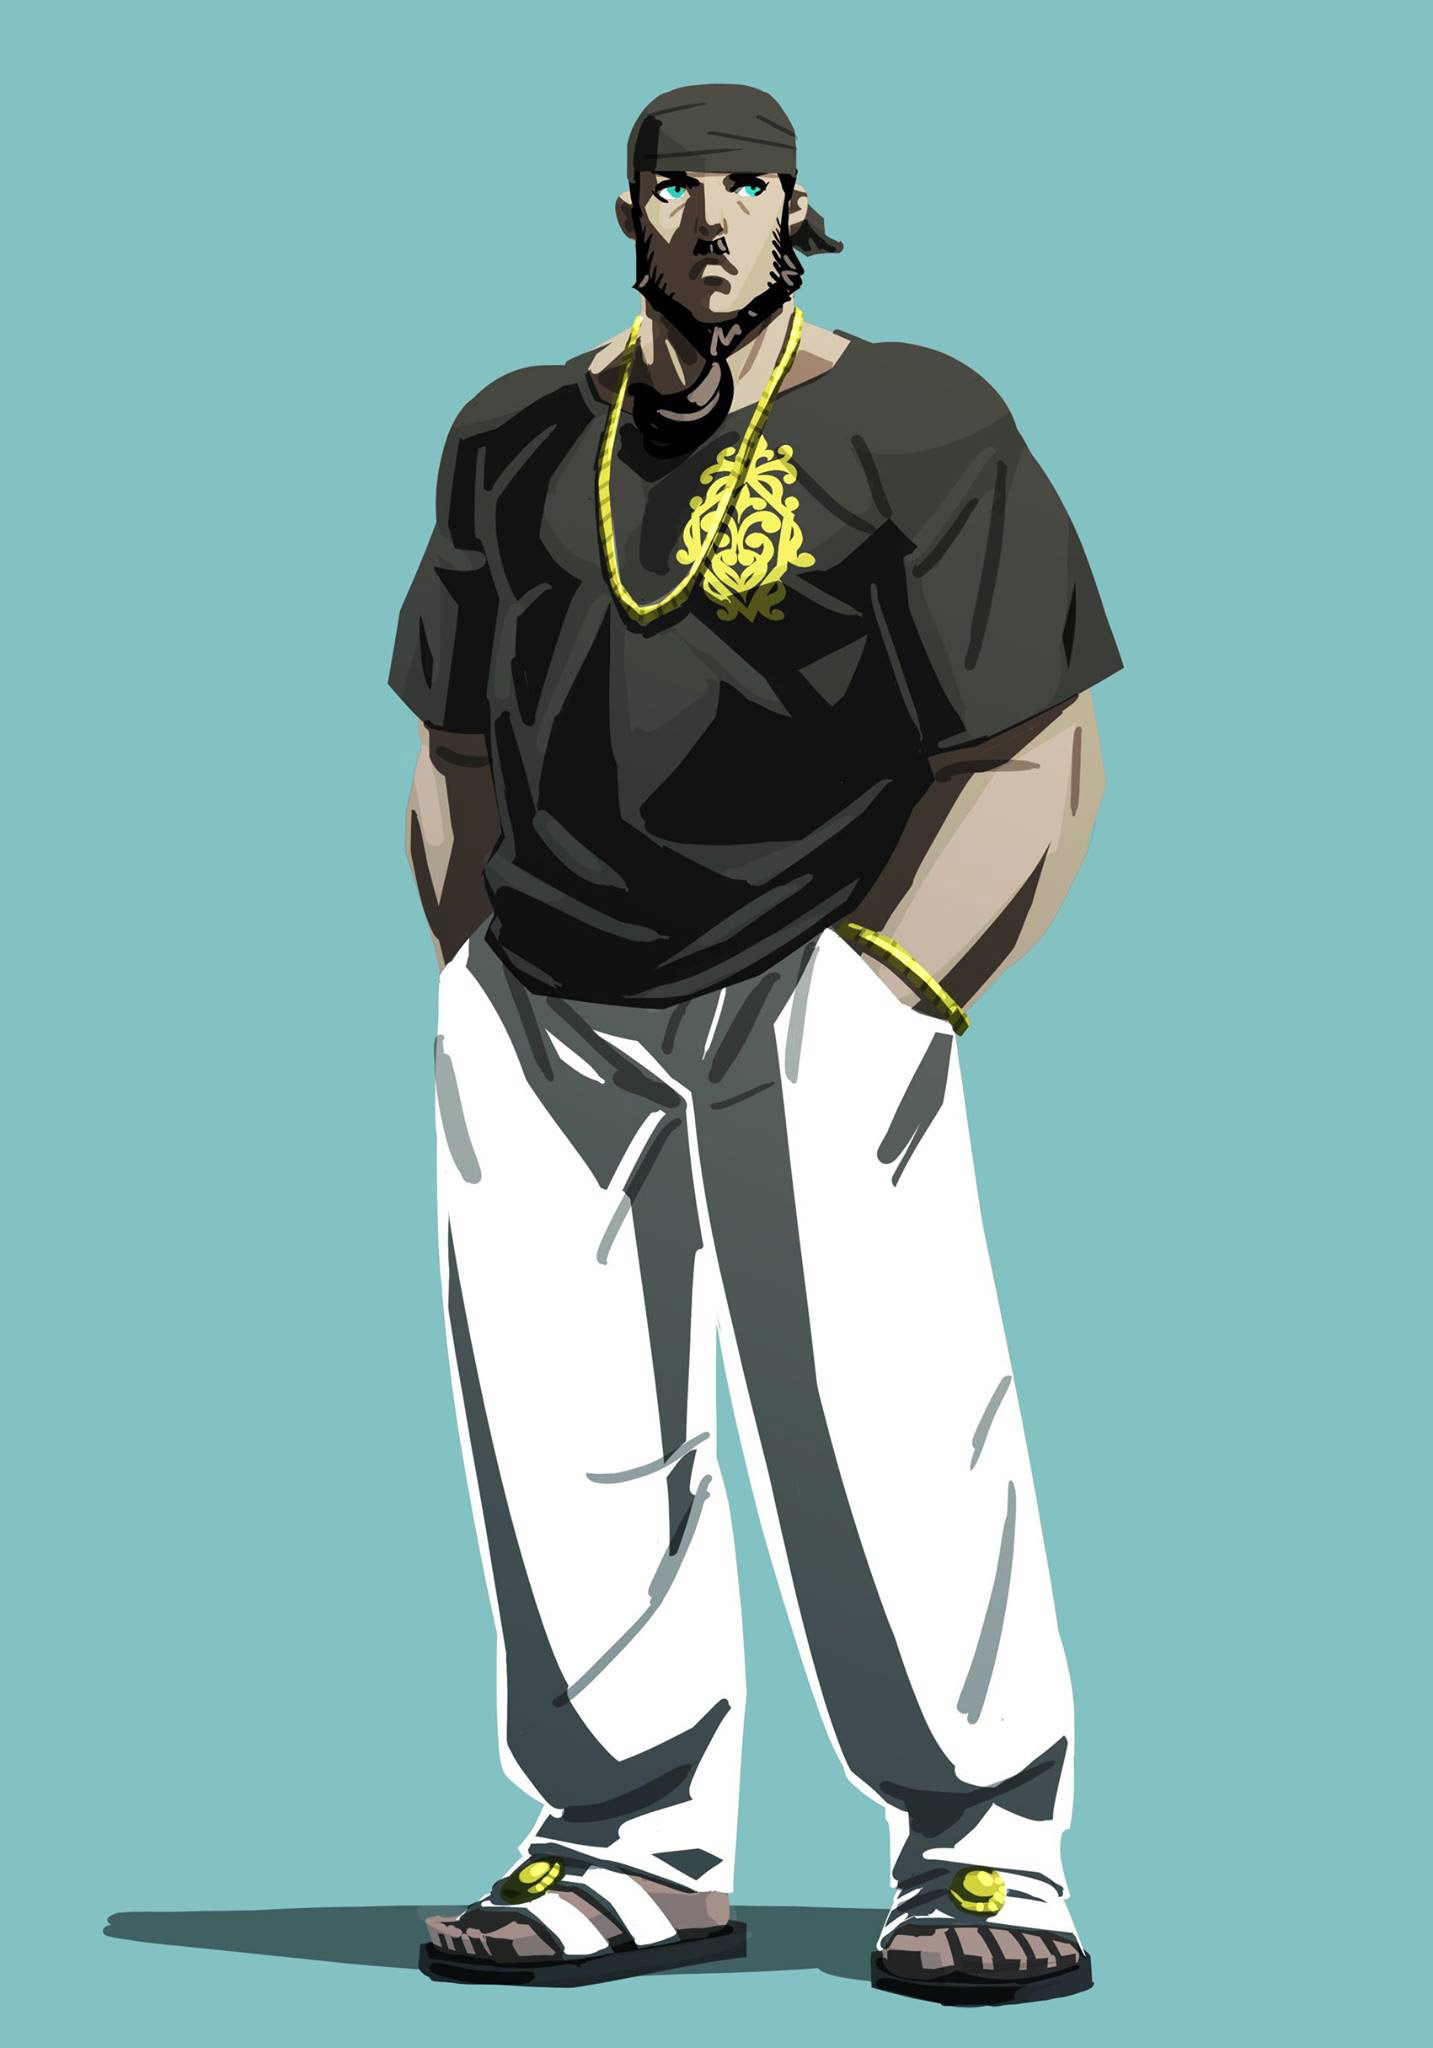 Street Fighter 5 story mode costume concept art 12 out of 13 image gallery